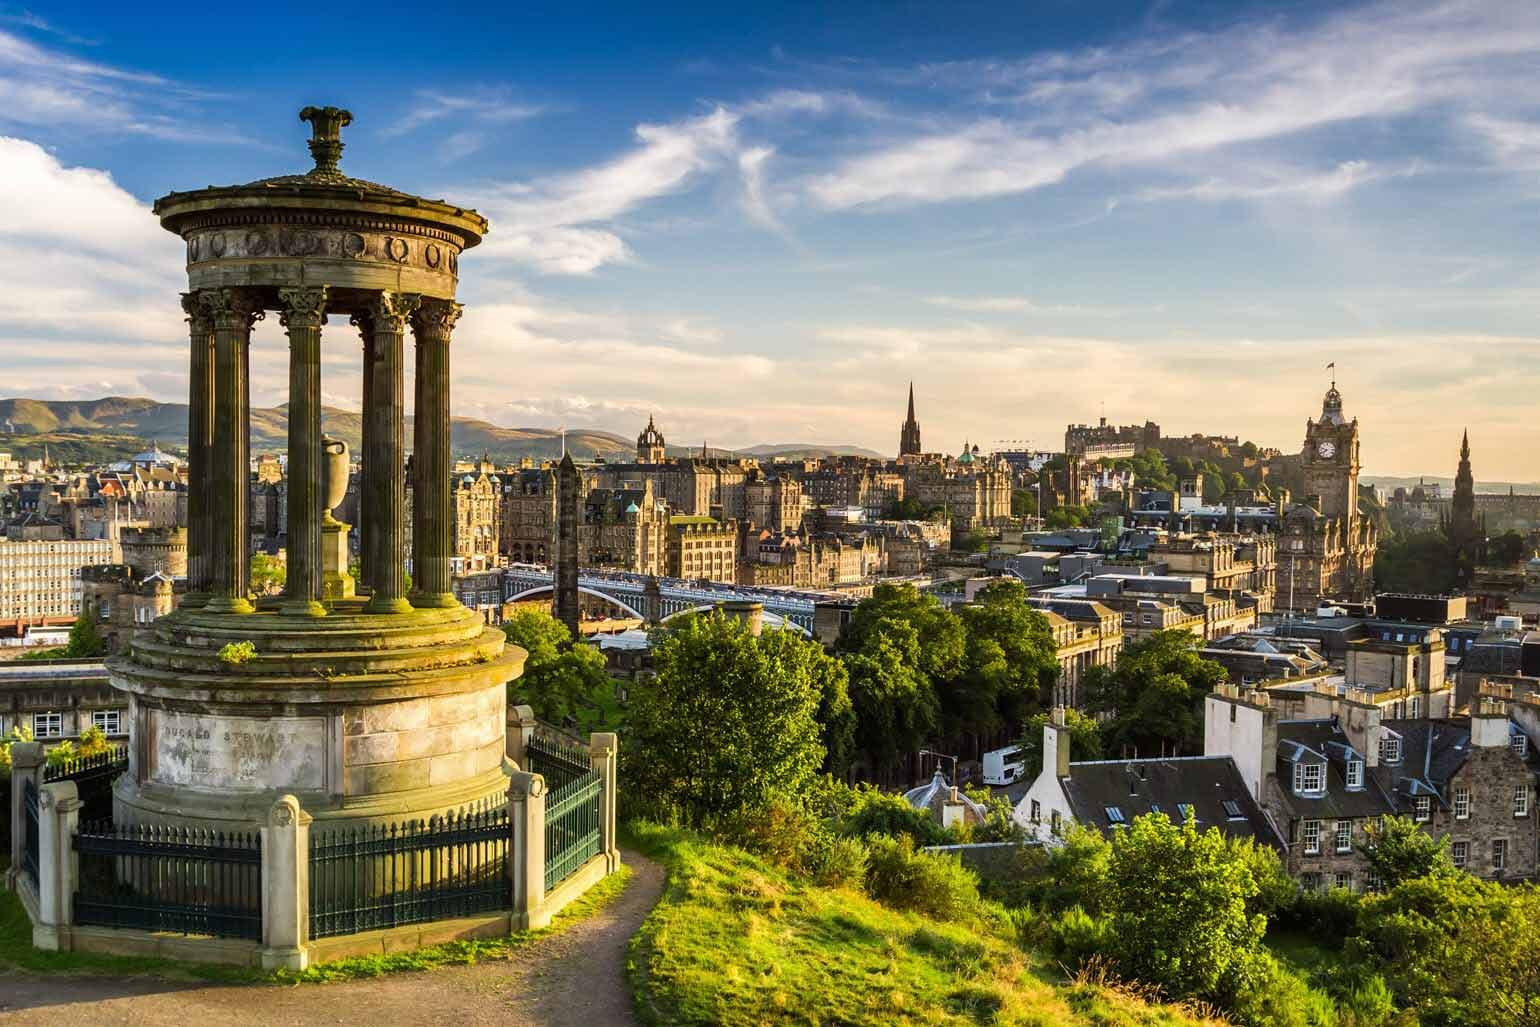 Beautiful view of the city of Edinburgh.